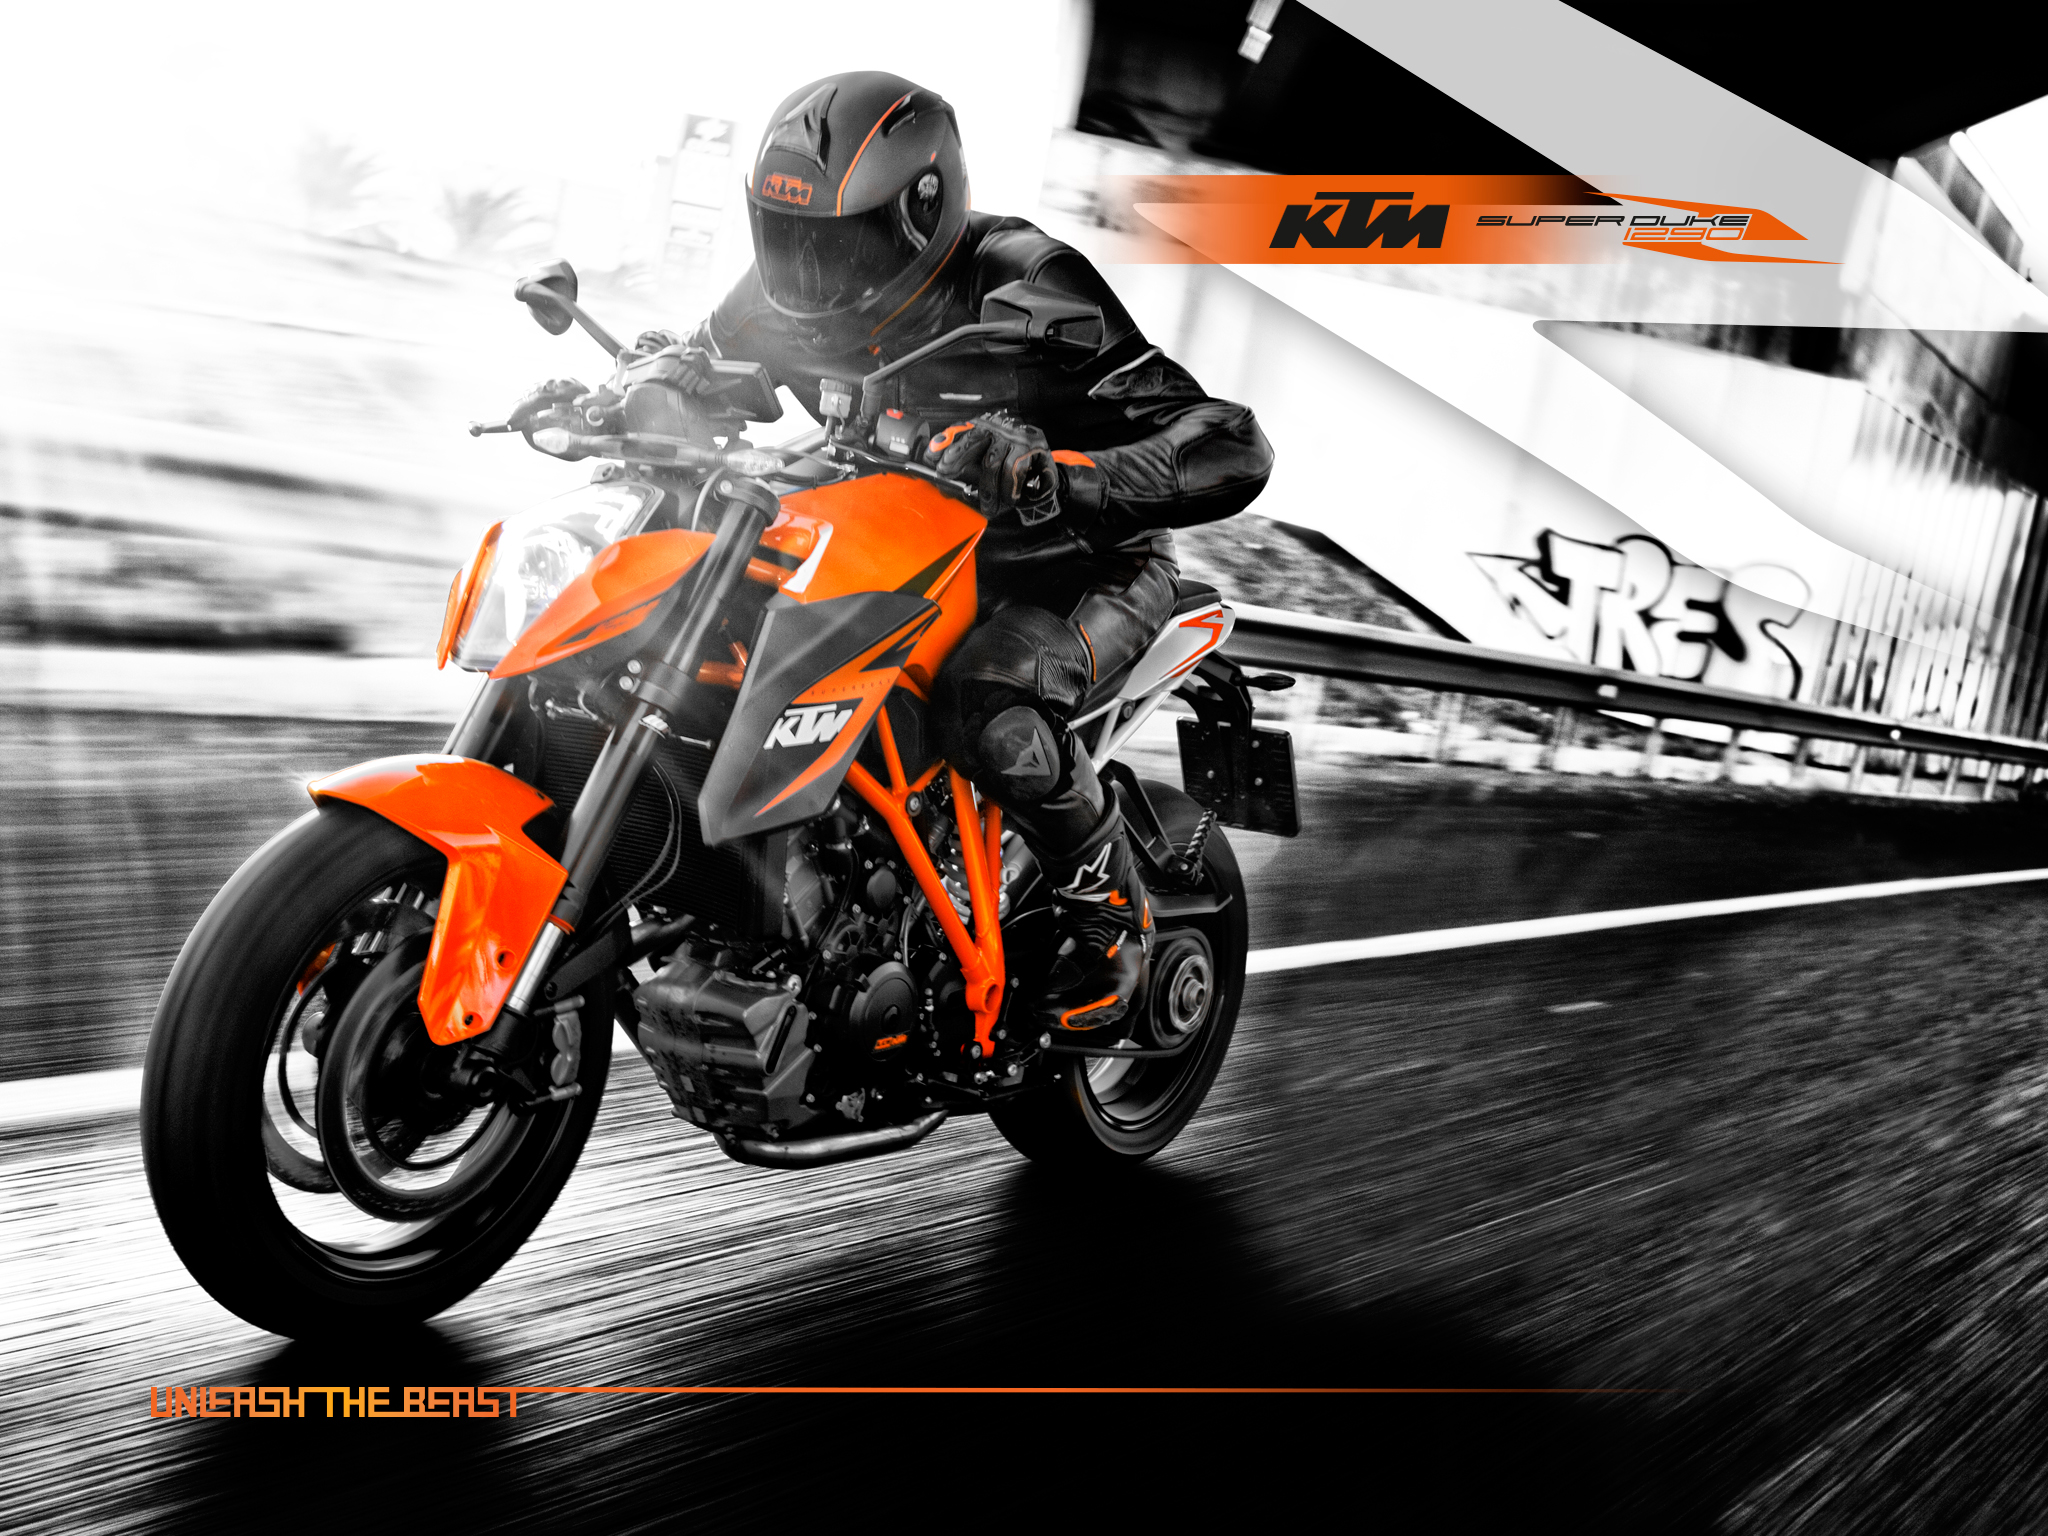 ktm-1290-super-duke-r-official-pics-and-specs-surface-photo-gallery 1